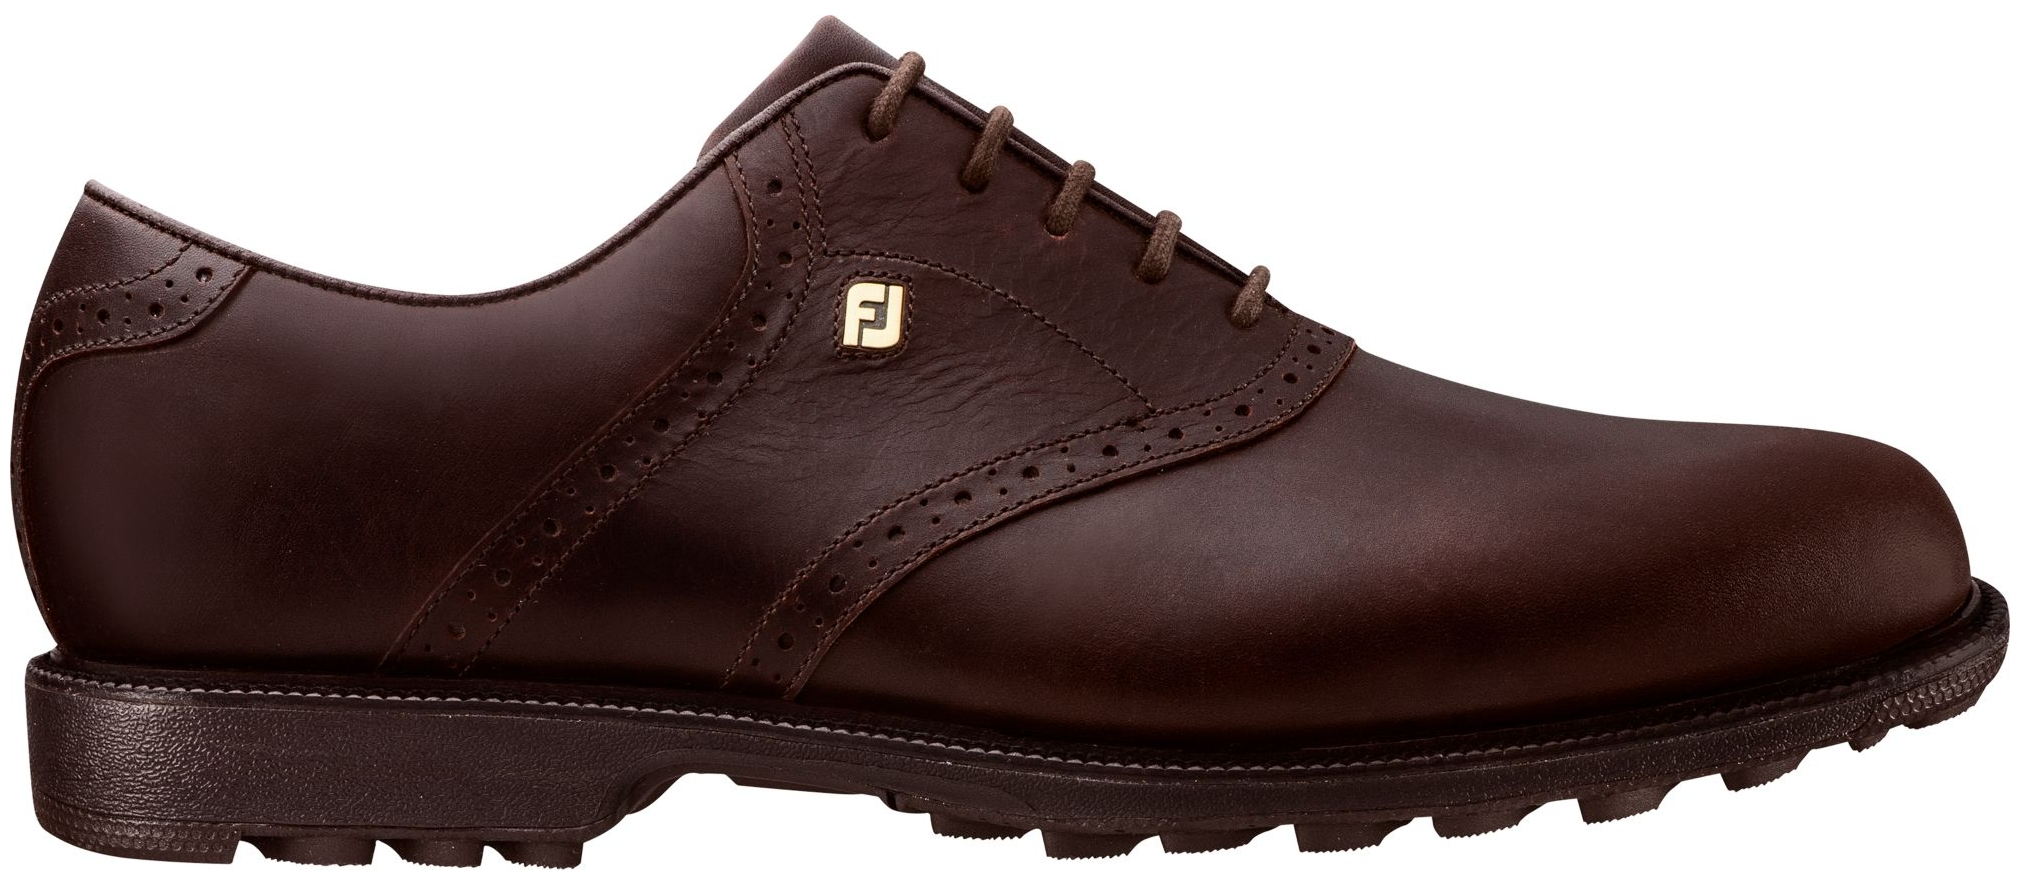 FootJoy Men's Club Professional Saddle Golf Shoes (Chocolate, 13) by FootJoy